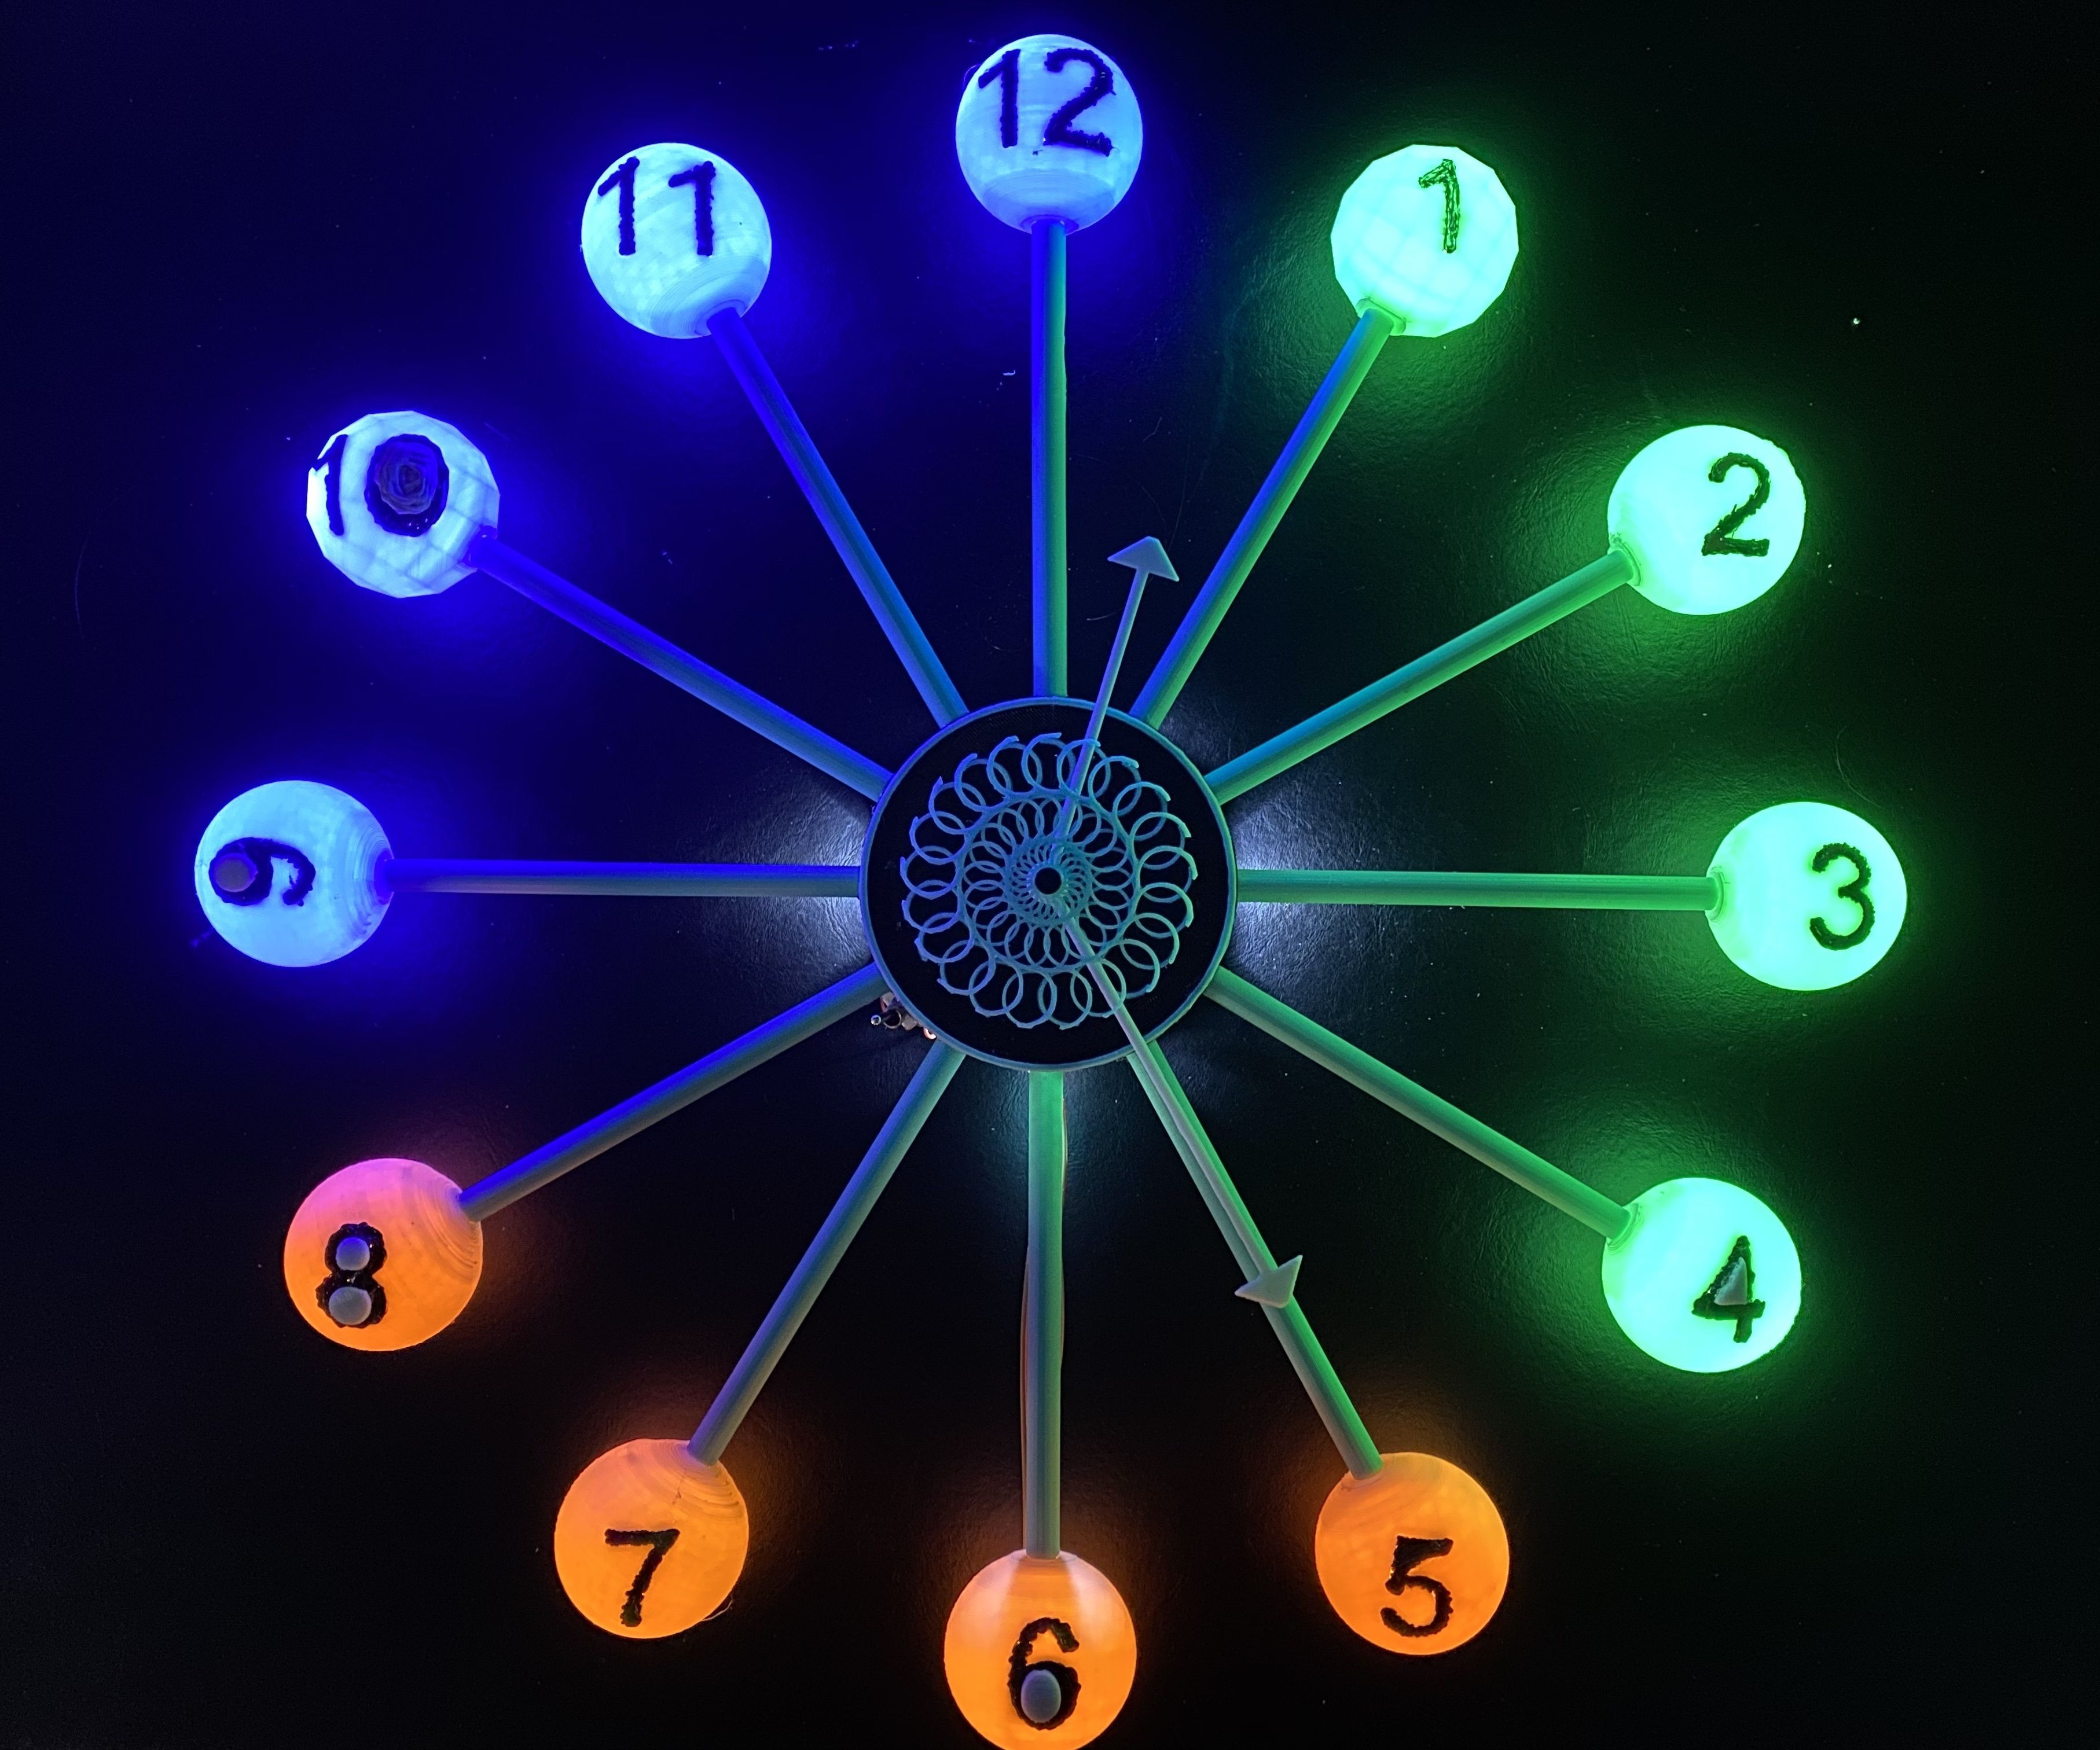 3D Printed Wall Clock With Kinetic Art and LEDs